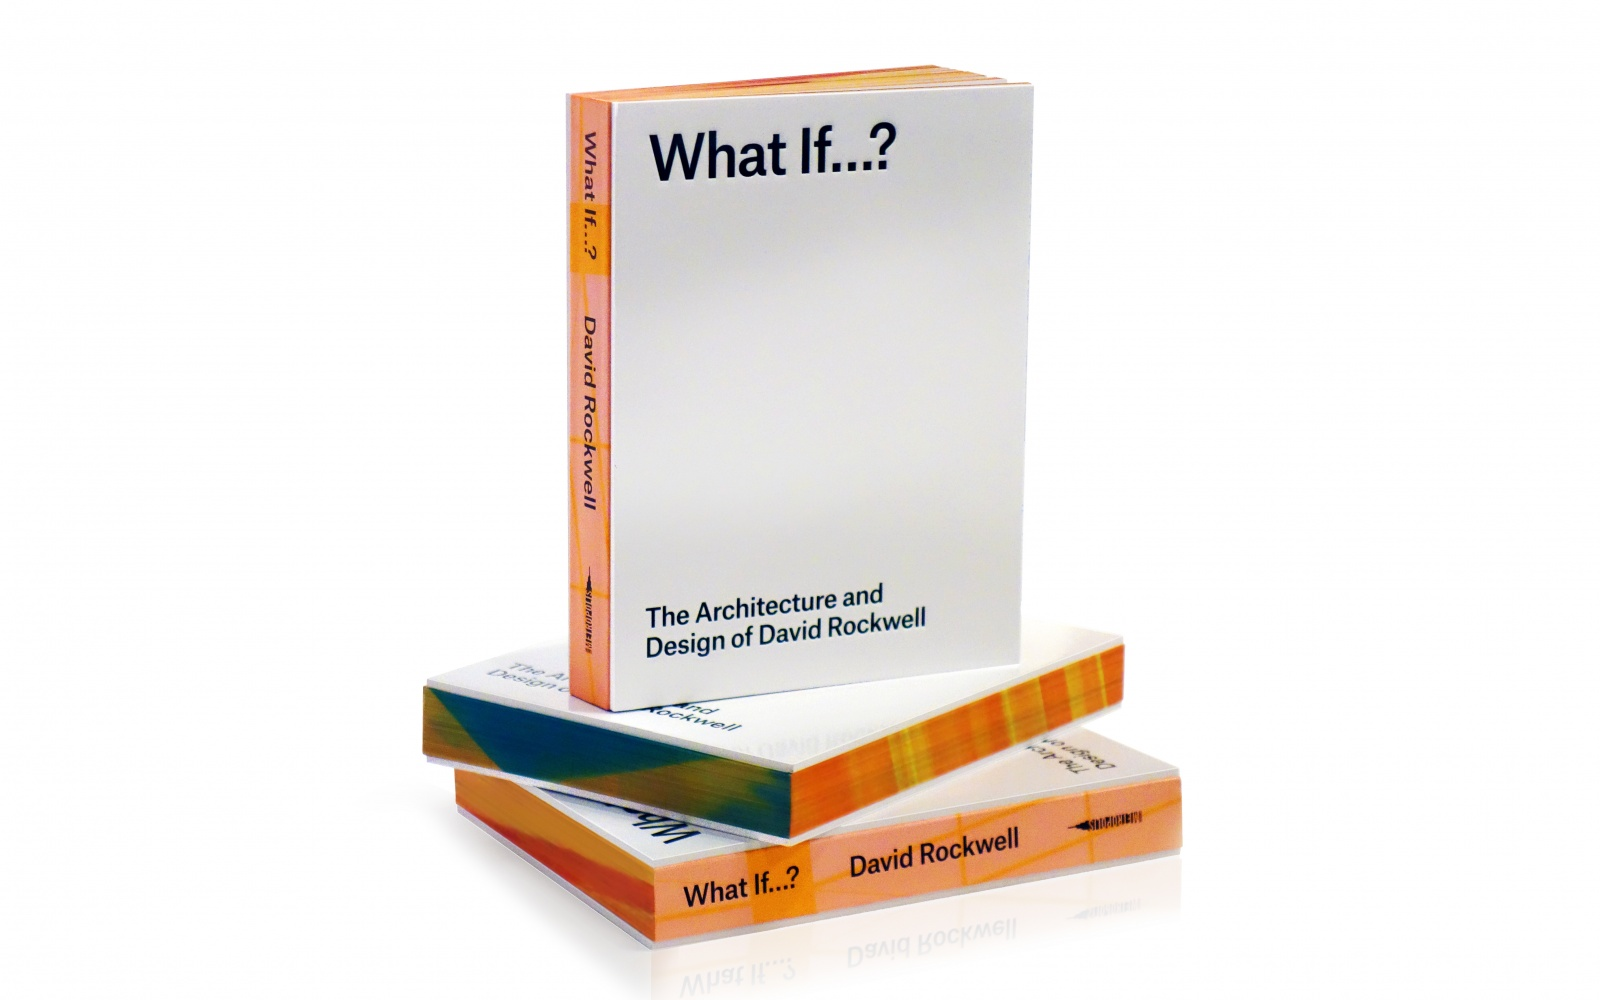 David Rockwell's book  What If…